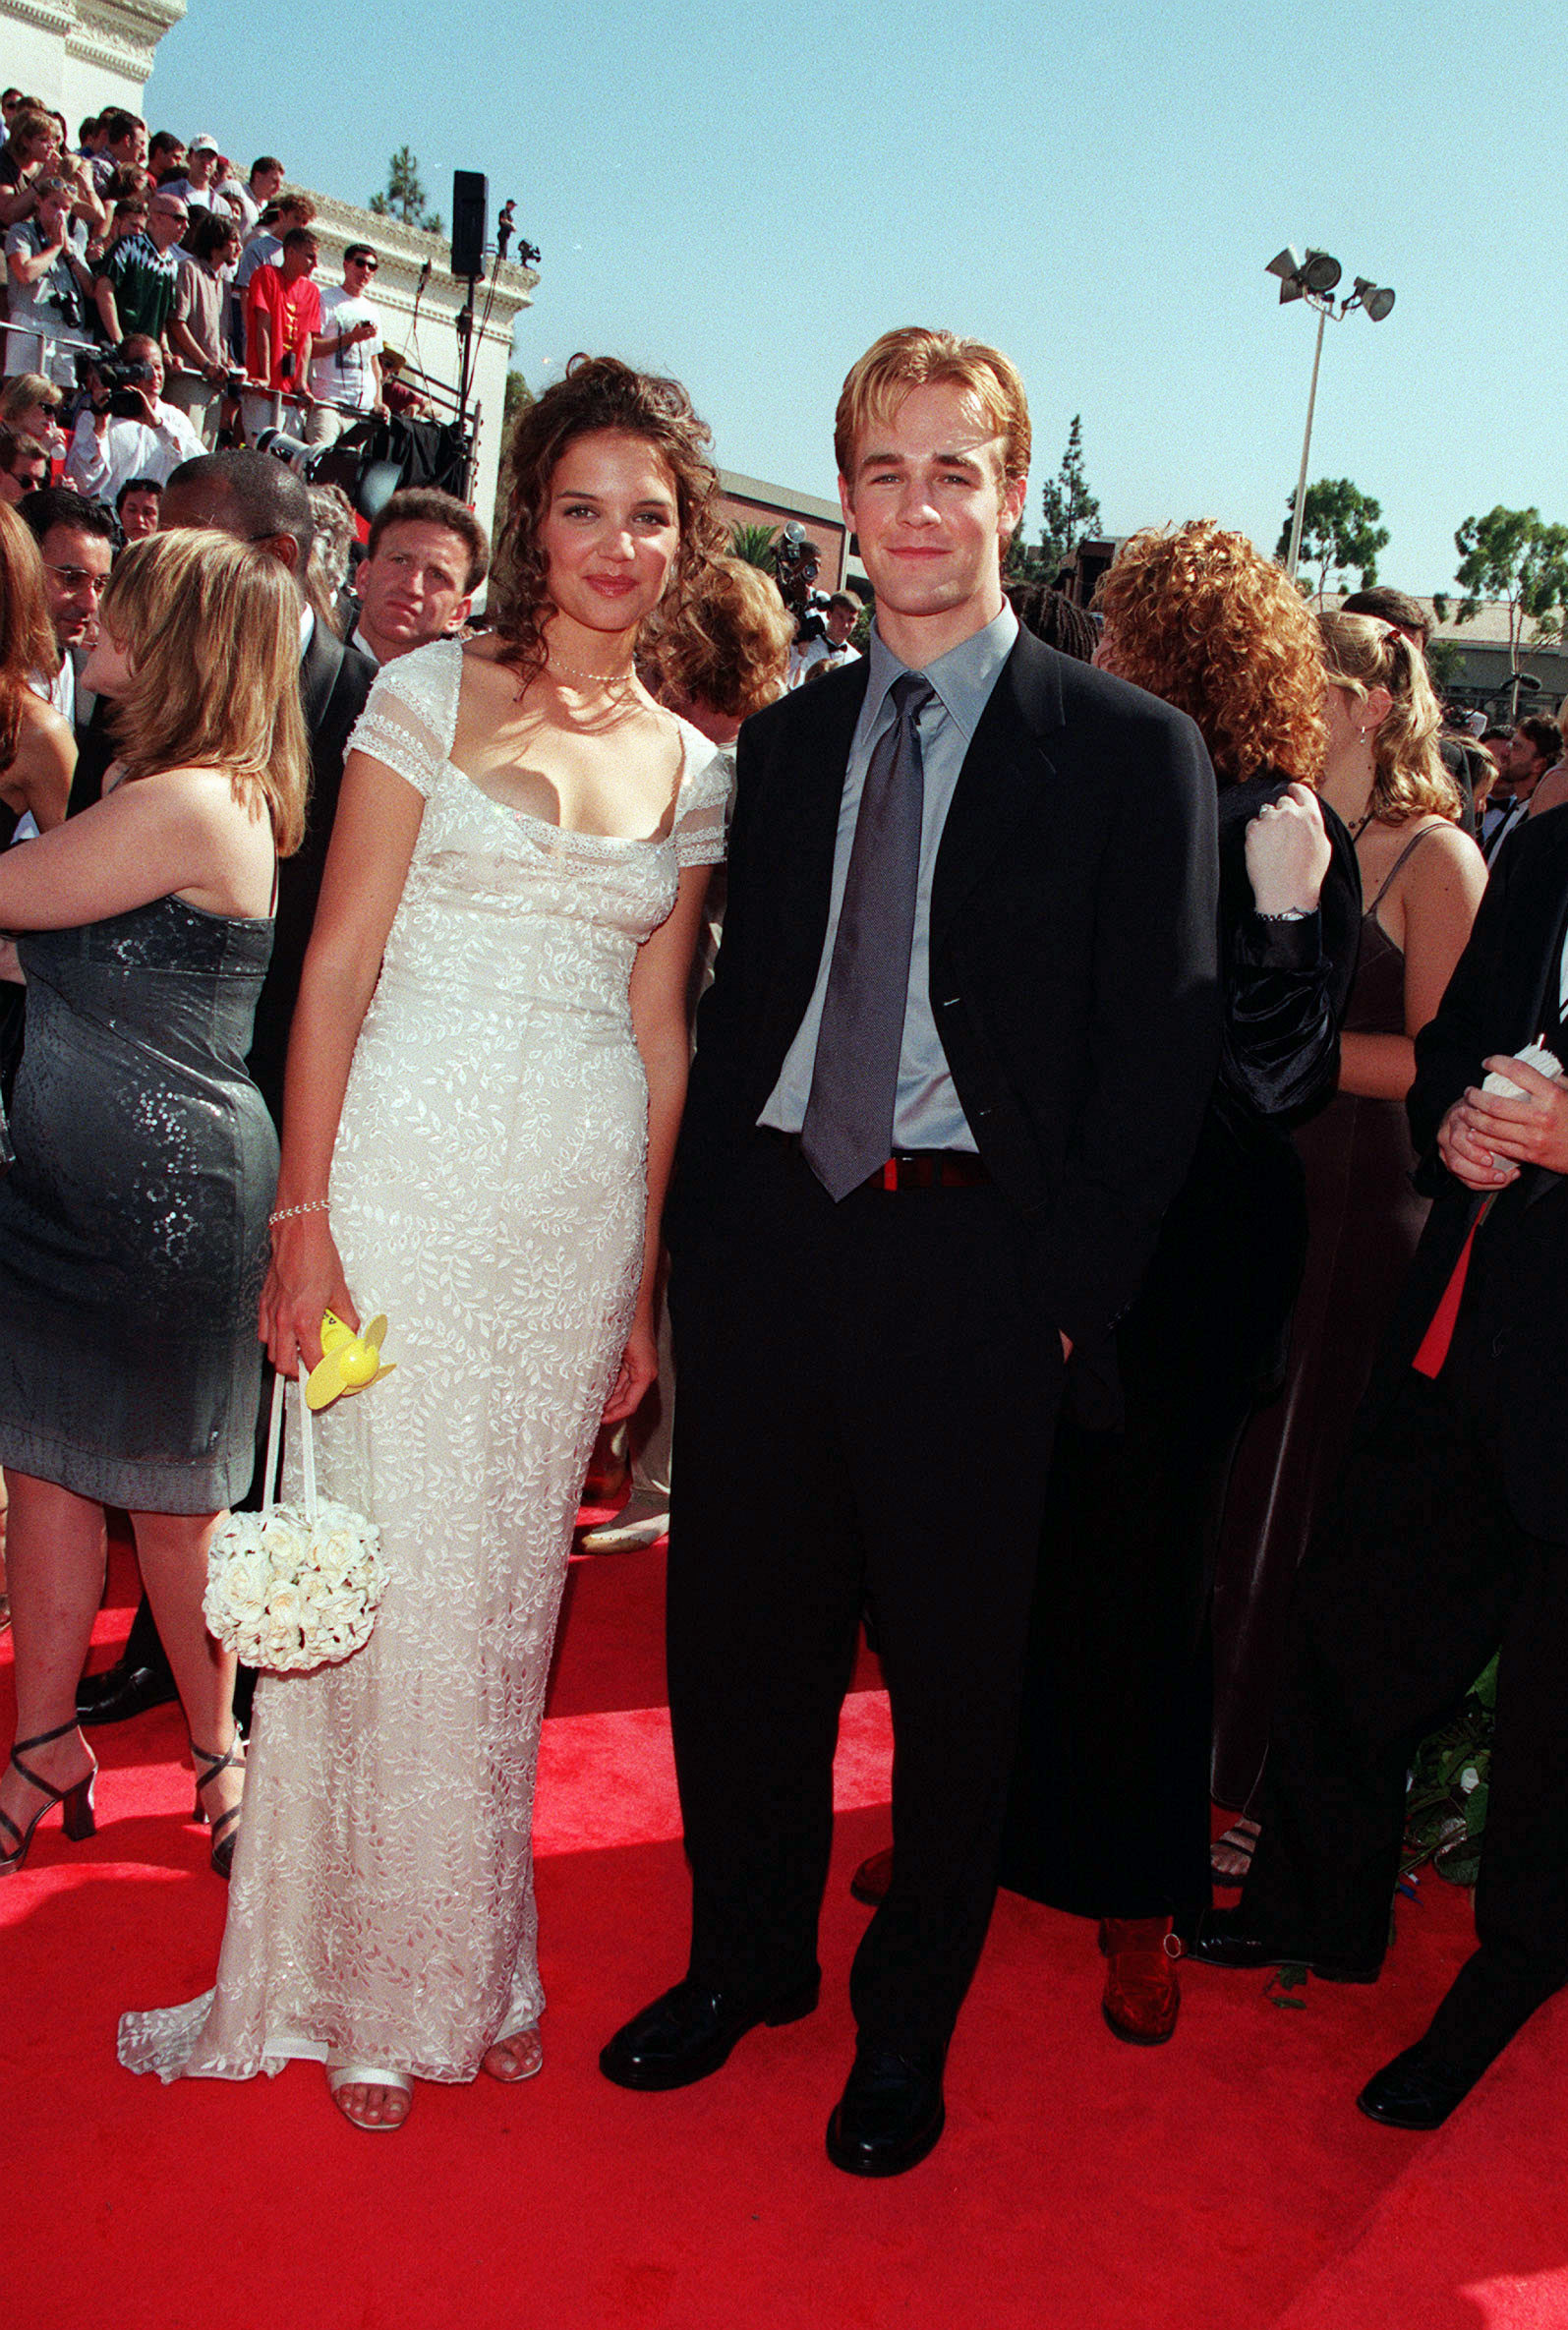 Katie Holmes and James Van Der Beek are pictured at an event in 1998